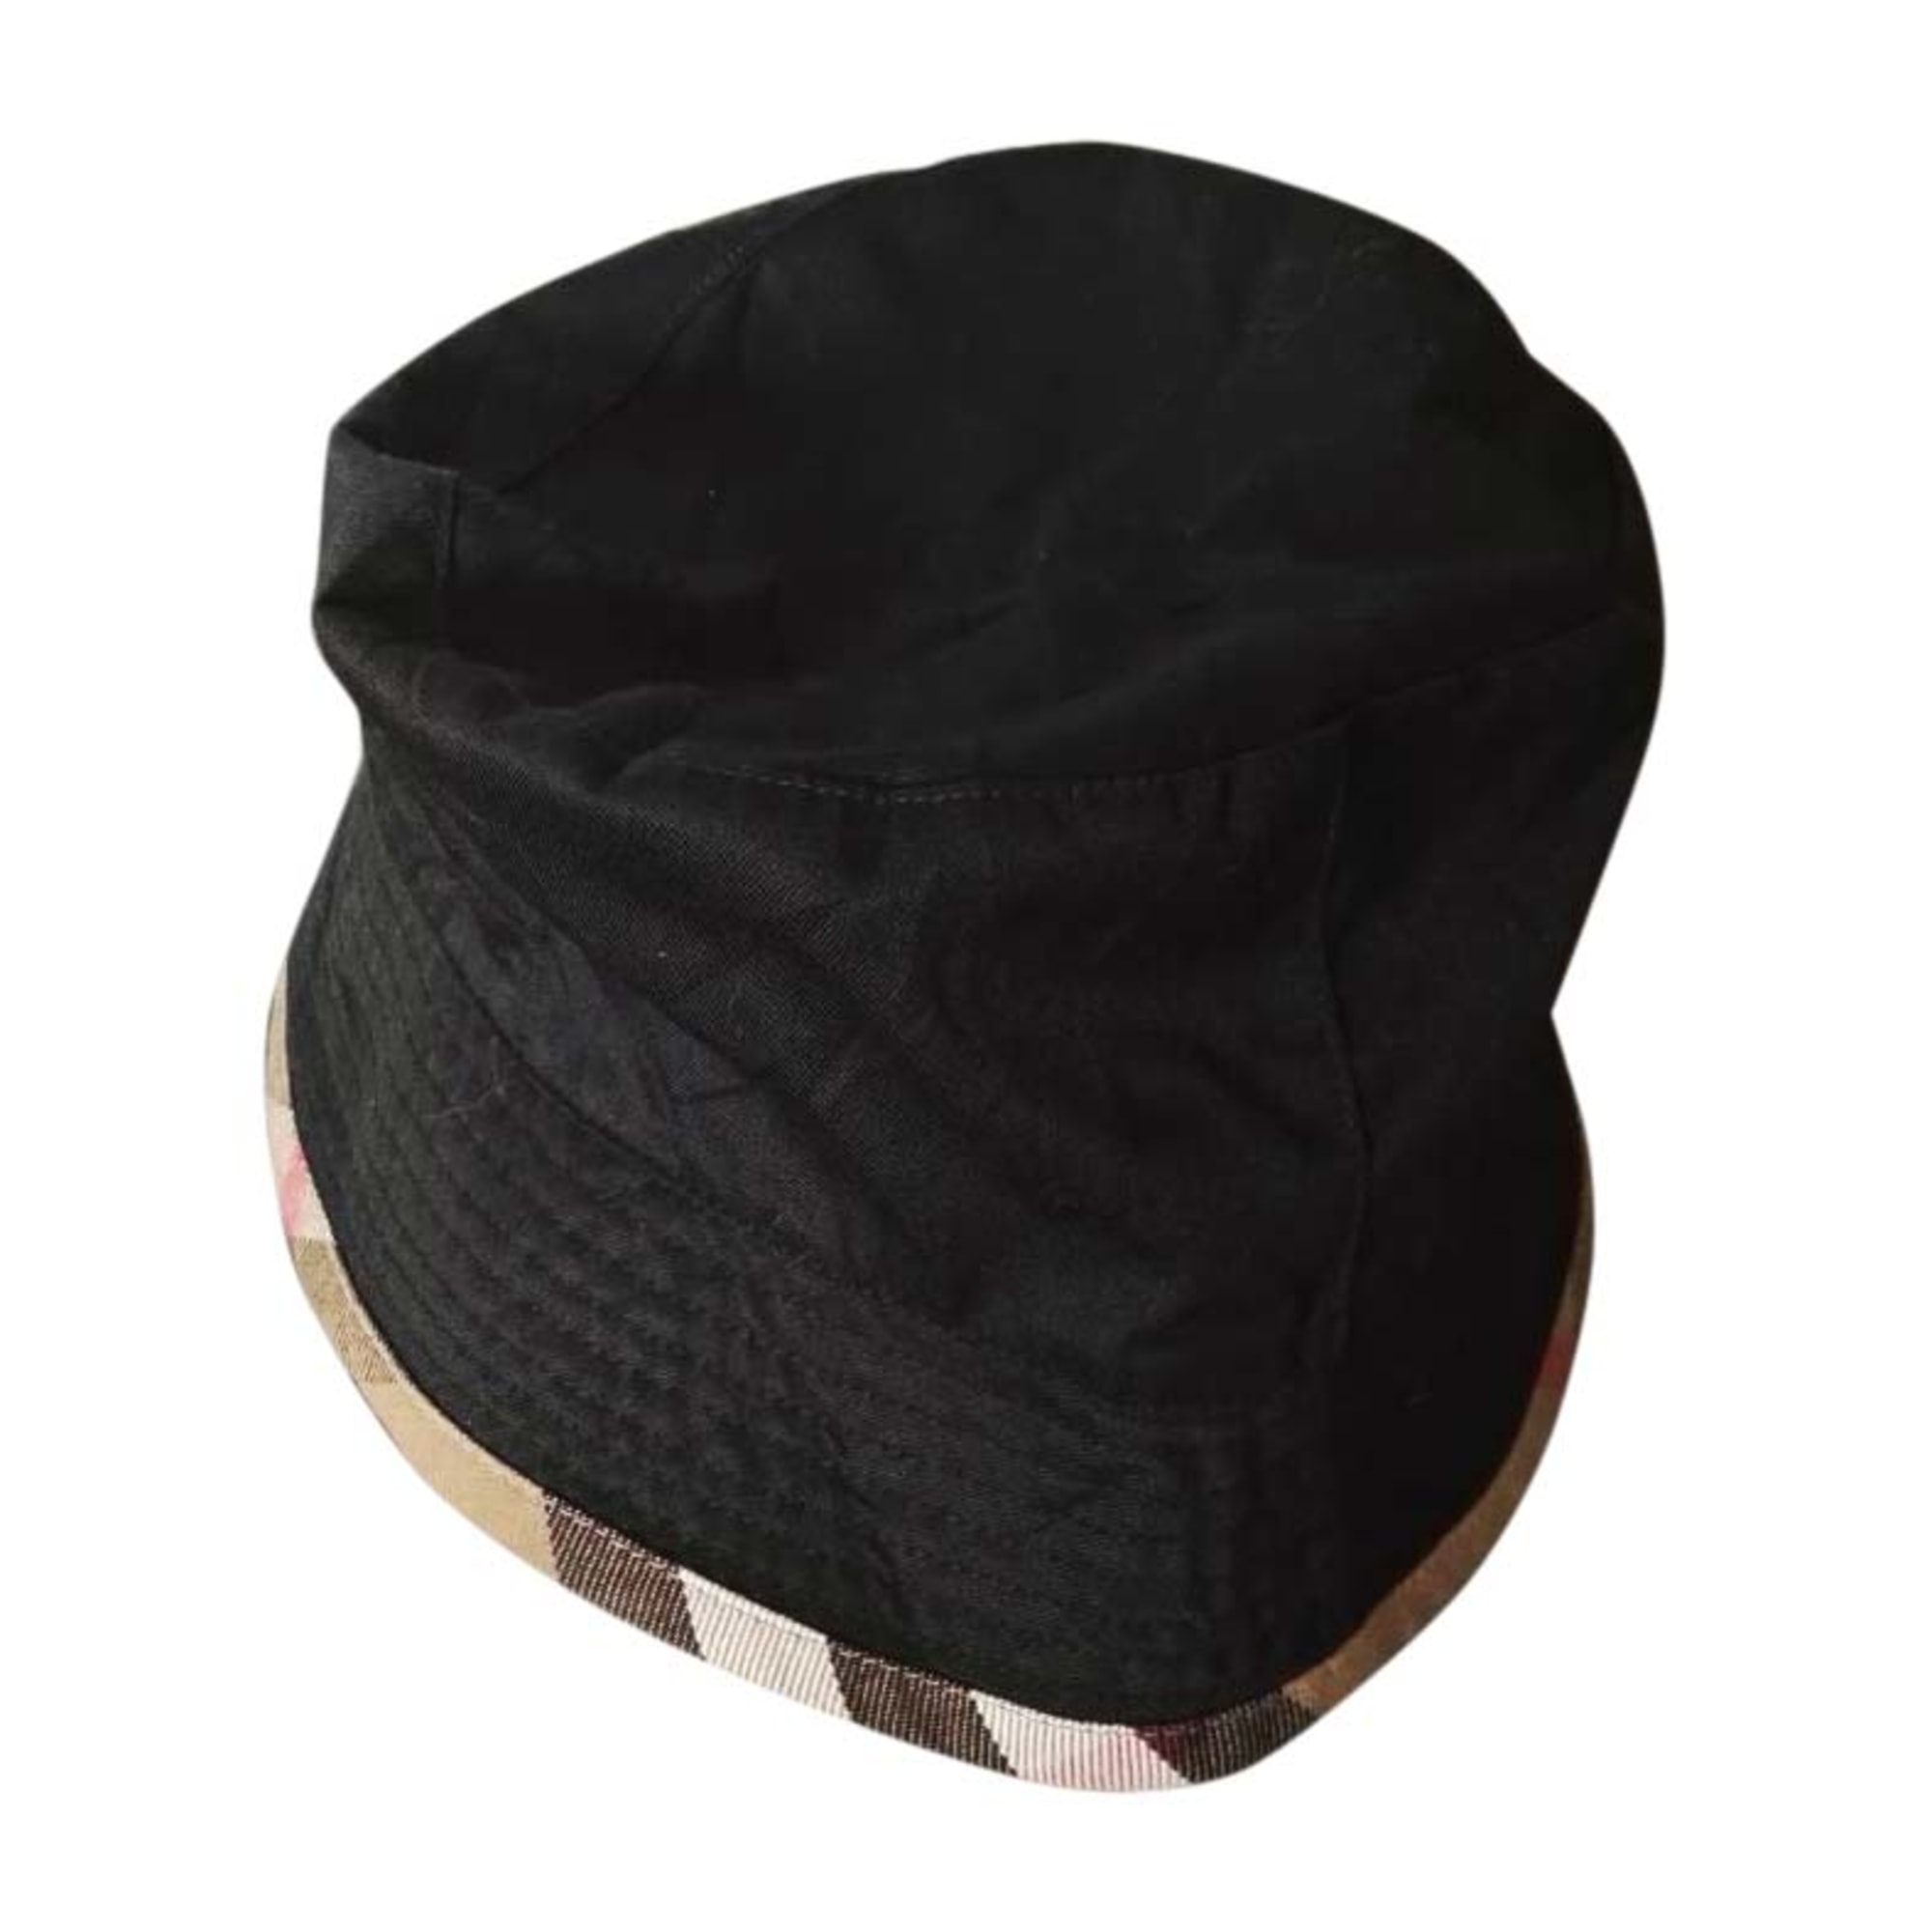 Sunhat BURBERRY Black